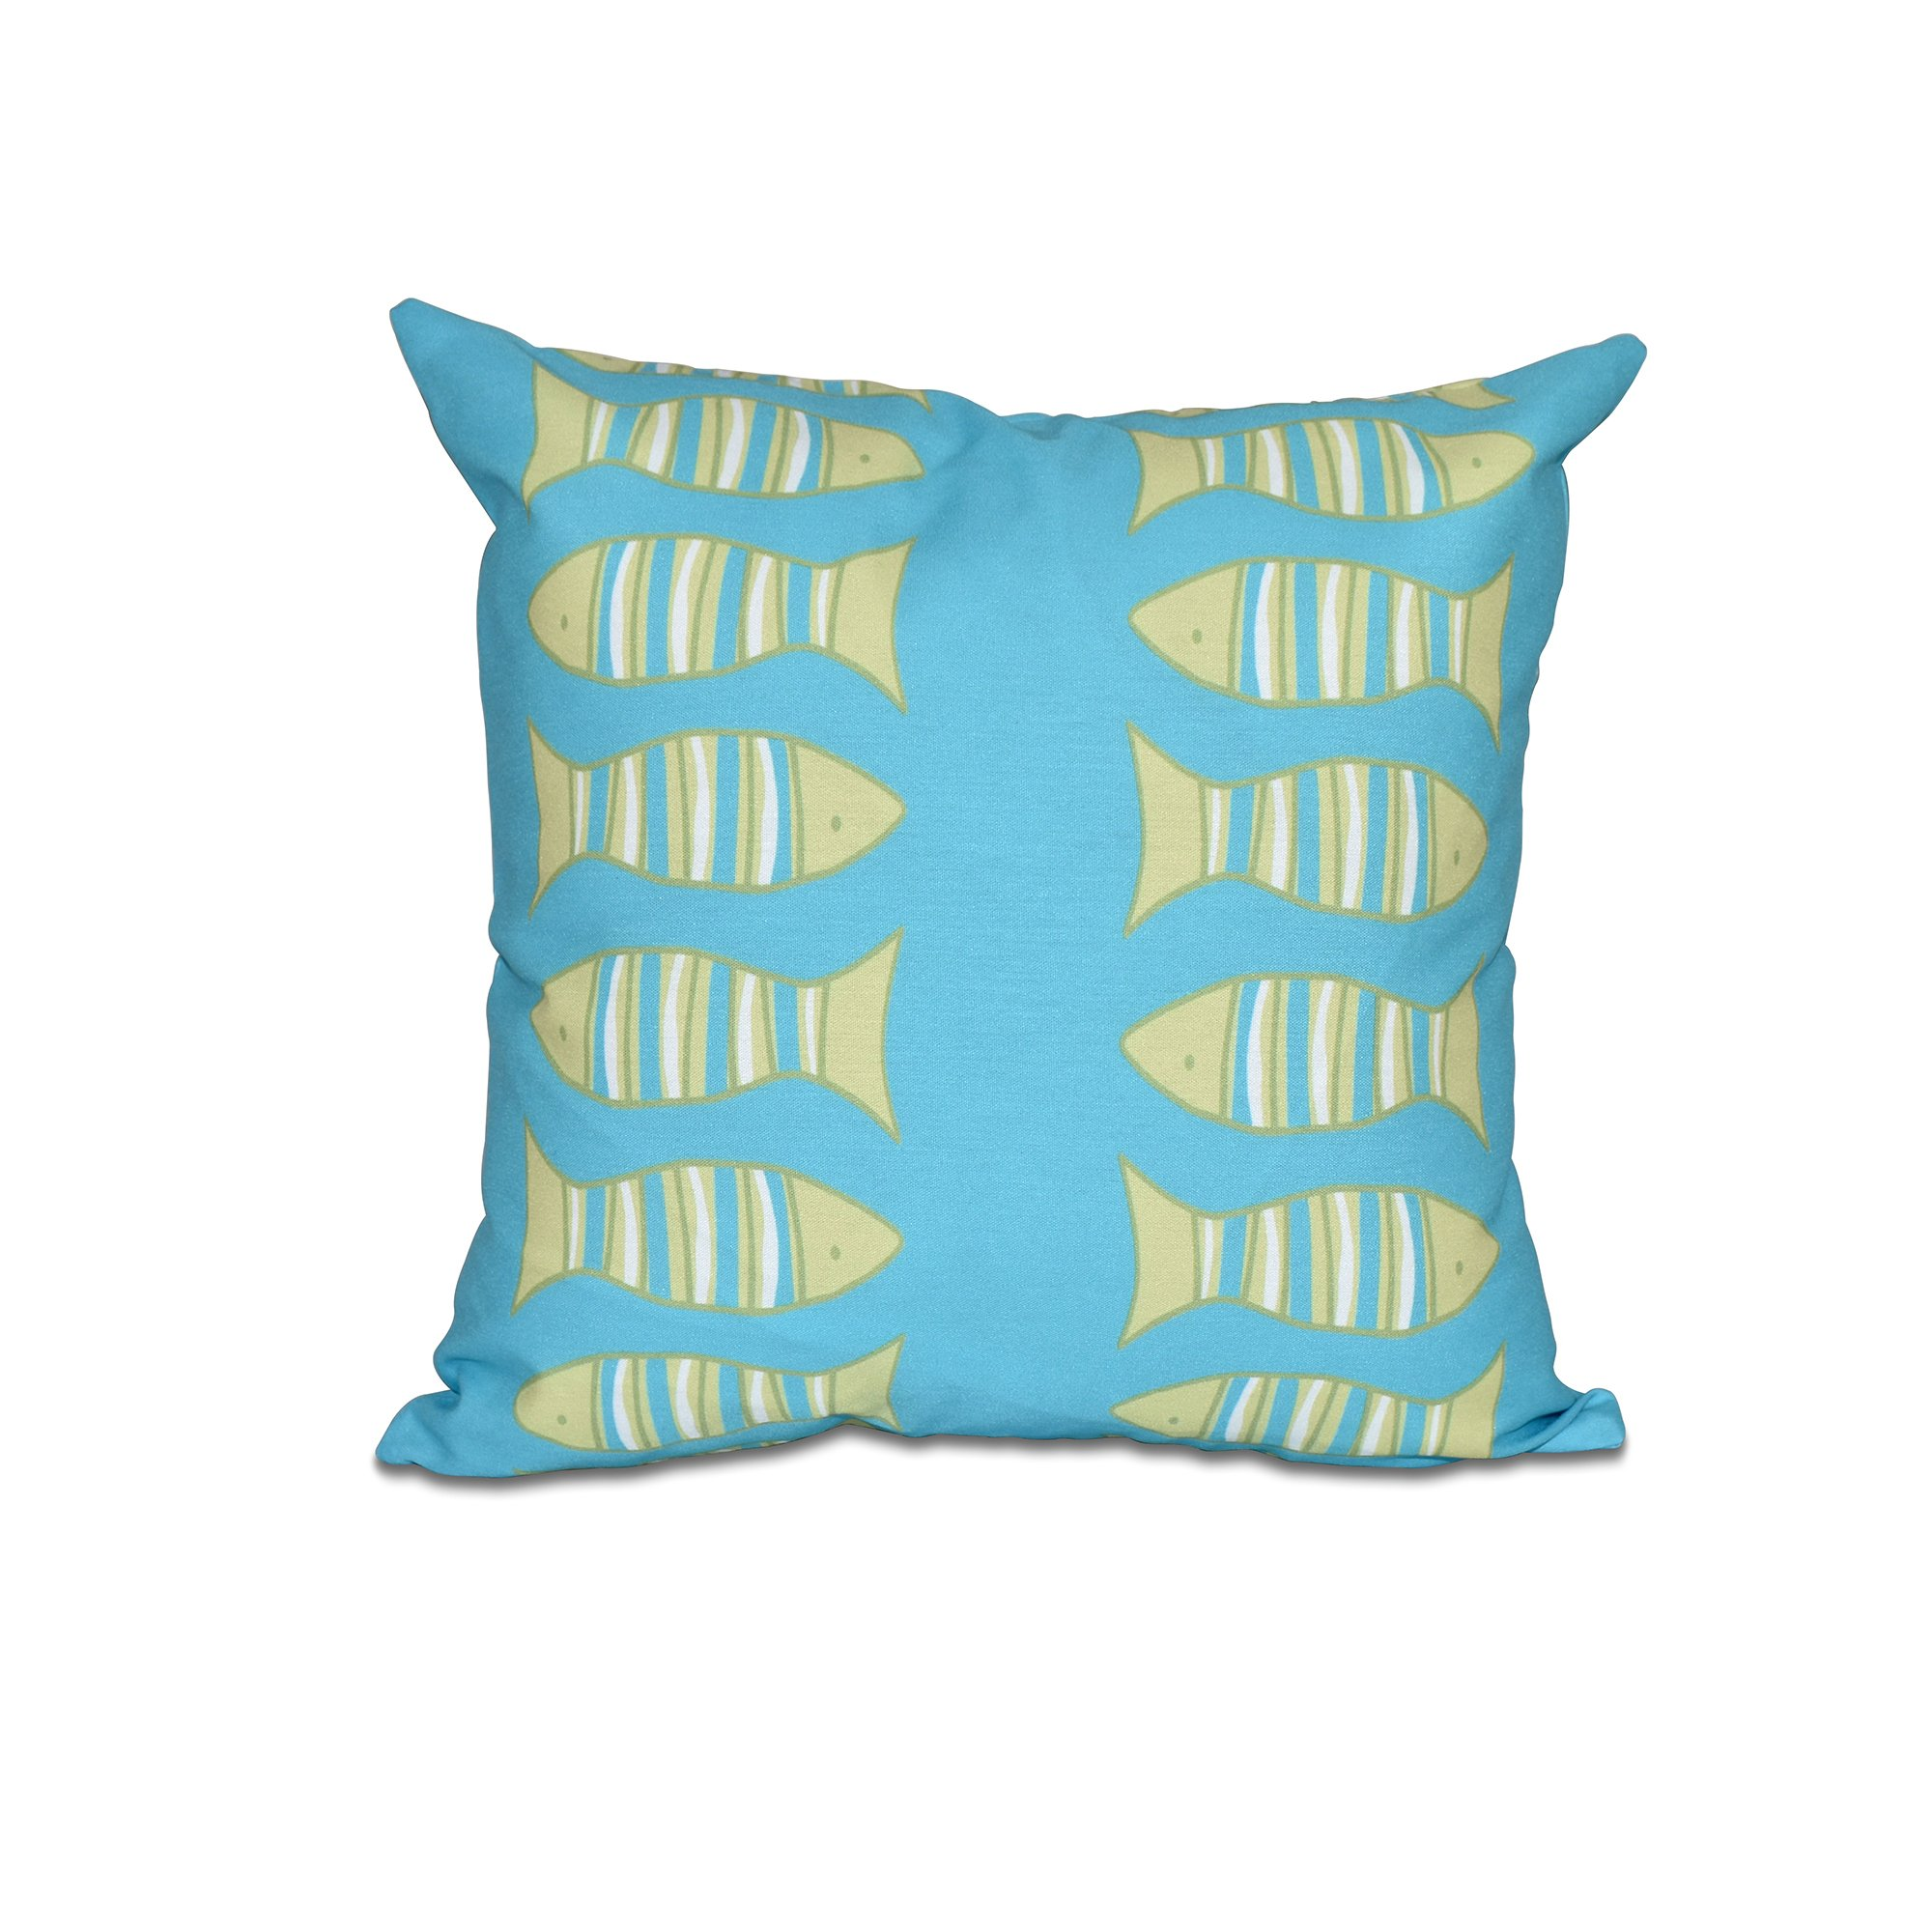 E by design O5PAN425BL27GR21-18 18 x 18 Something's Fishy Animal Print Blue Outdoor Pillow